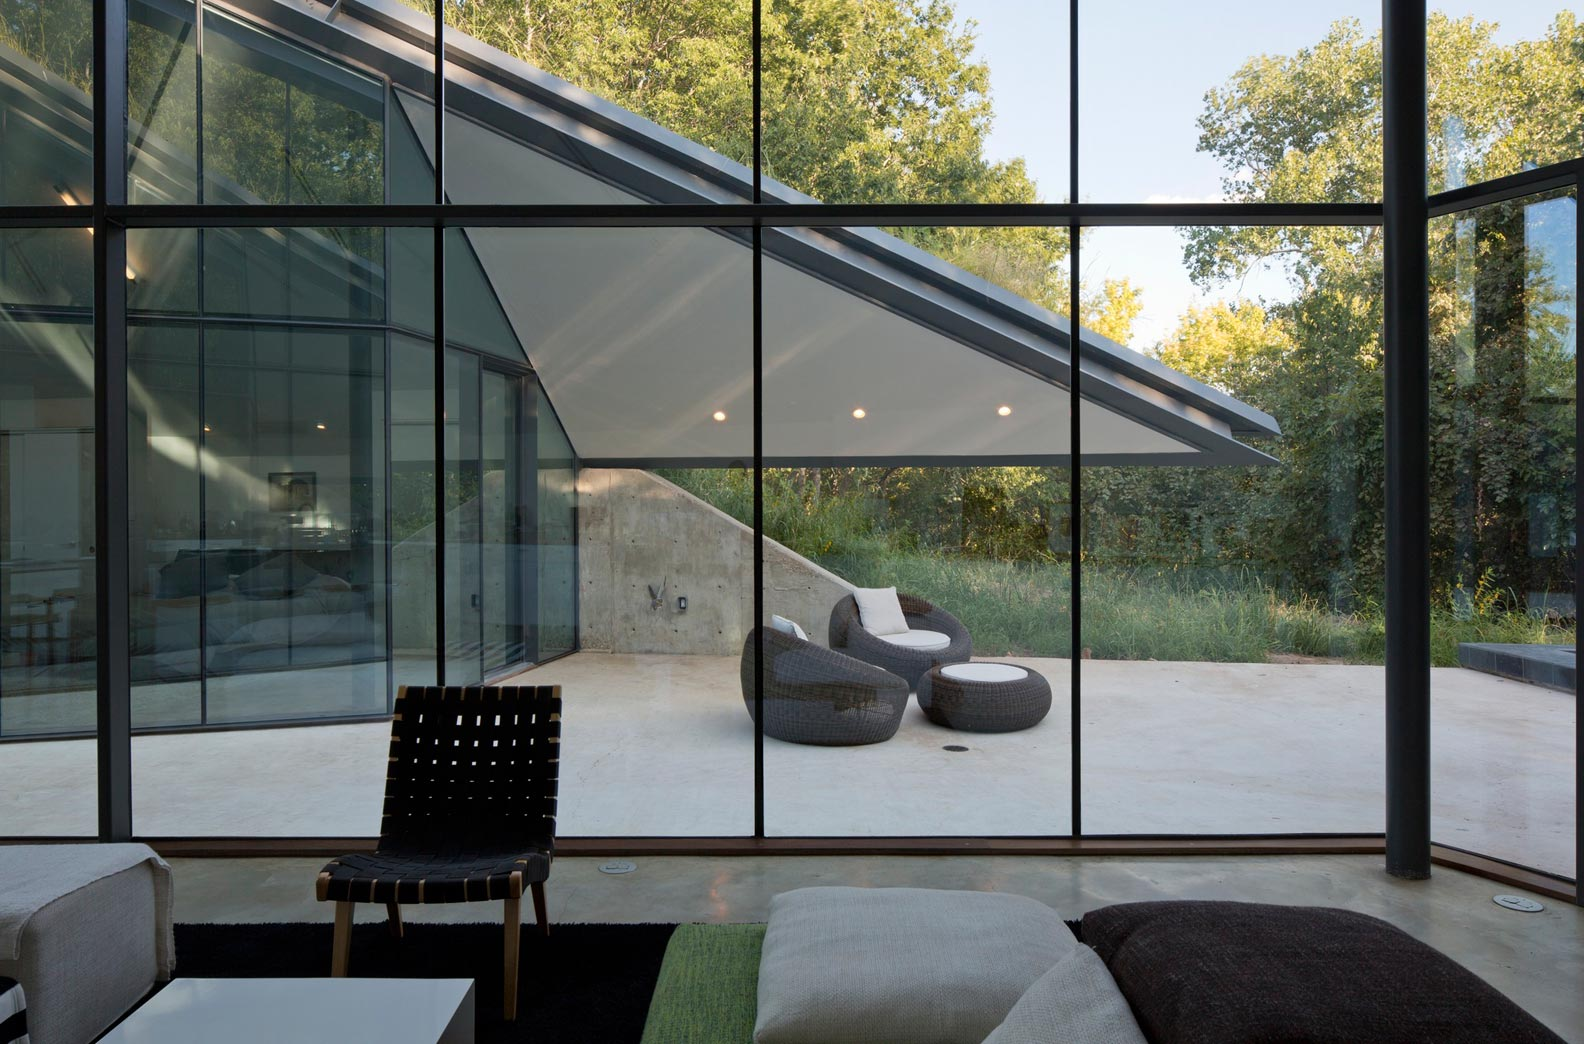 Paneled glass walls of pit house outdoor interior design - Interior glass wall designs for houses ...